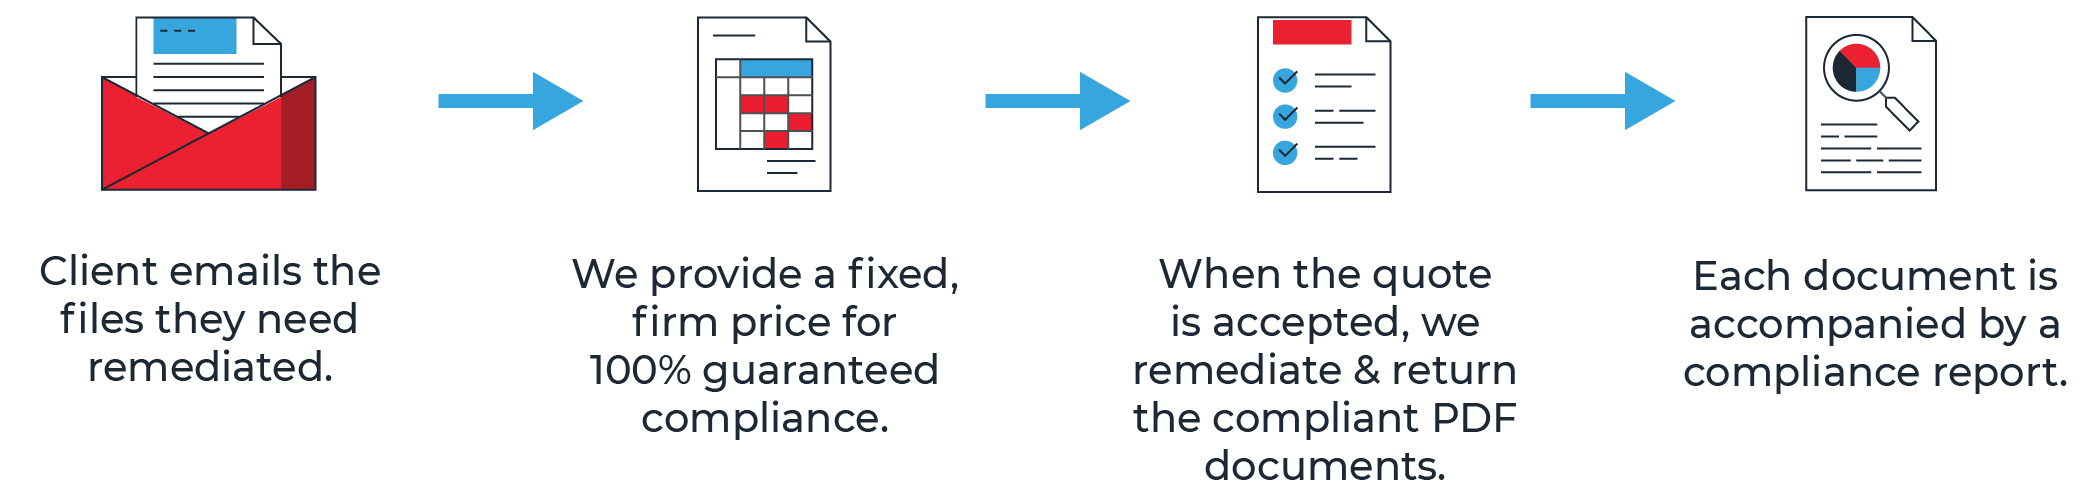 Graphic showing CommonLook's remediation process: You provide us with the PDF files you want to be verified and repaired for accessibility. This could be a list of URLs, a website, or a DVD. We will provide you with a fixed, firm quote to ensure their compliance. Upon approval, we perform the remediation to conform to accessibility standards and return the fully accessible compliant PDF to you. Upon request, we can provide a comprehensive compliance report for each document.